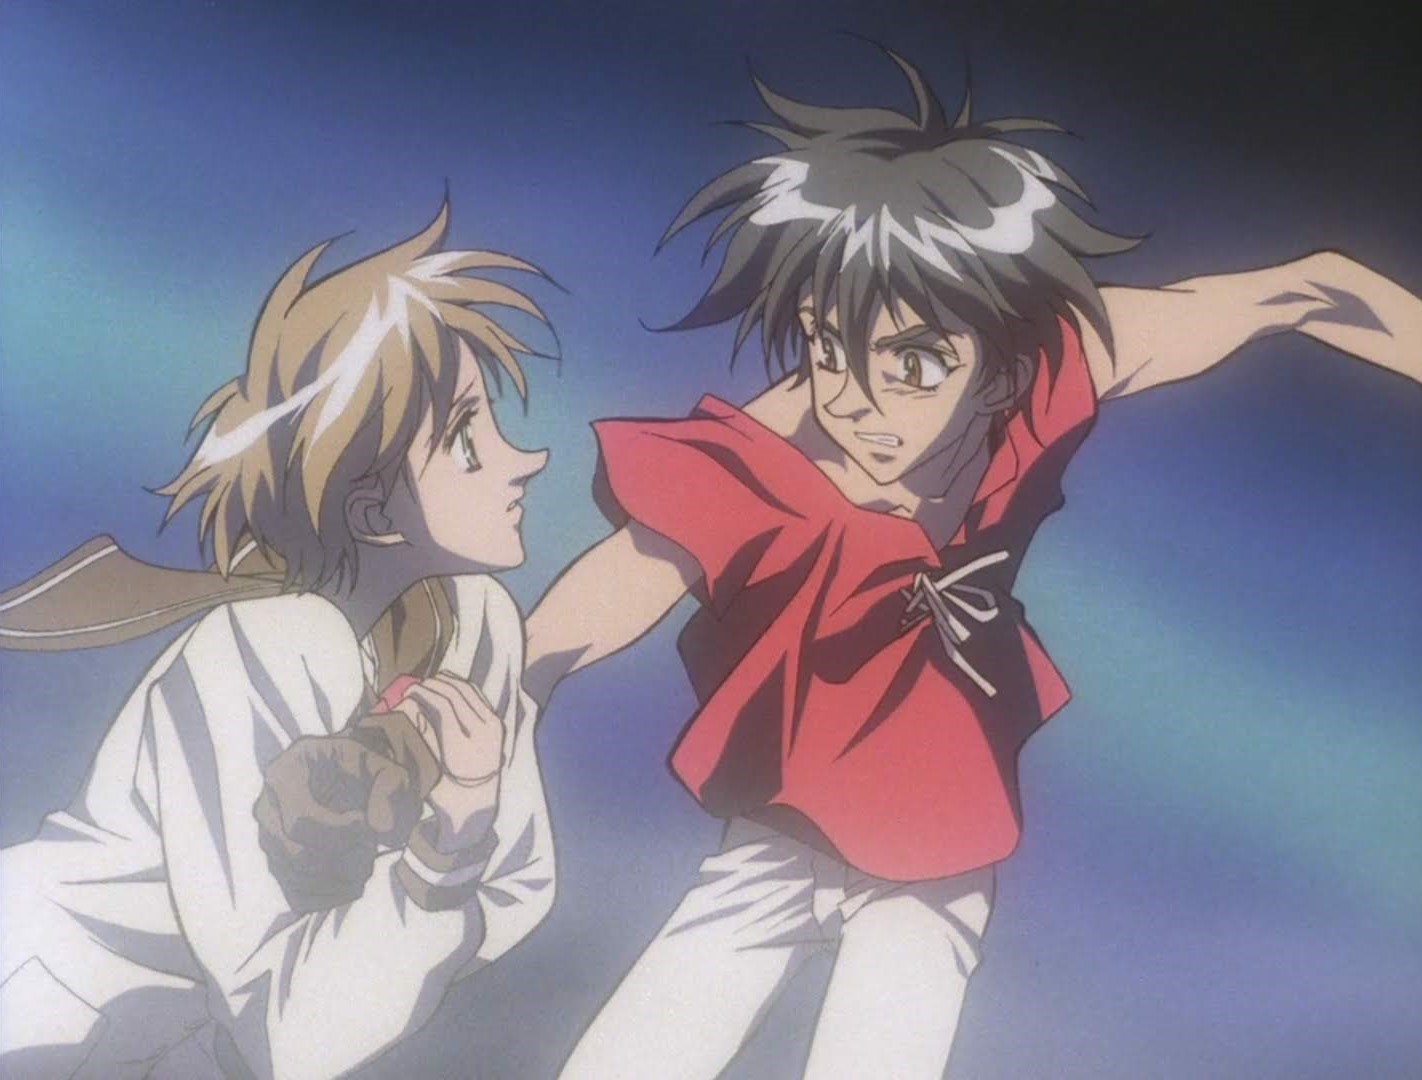 a short-haired girl holds on to a dark haired boy's arm to prevent him from striking out